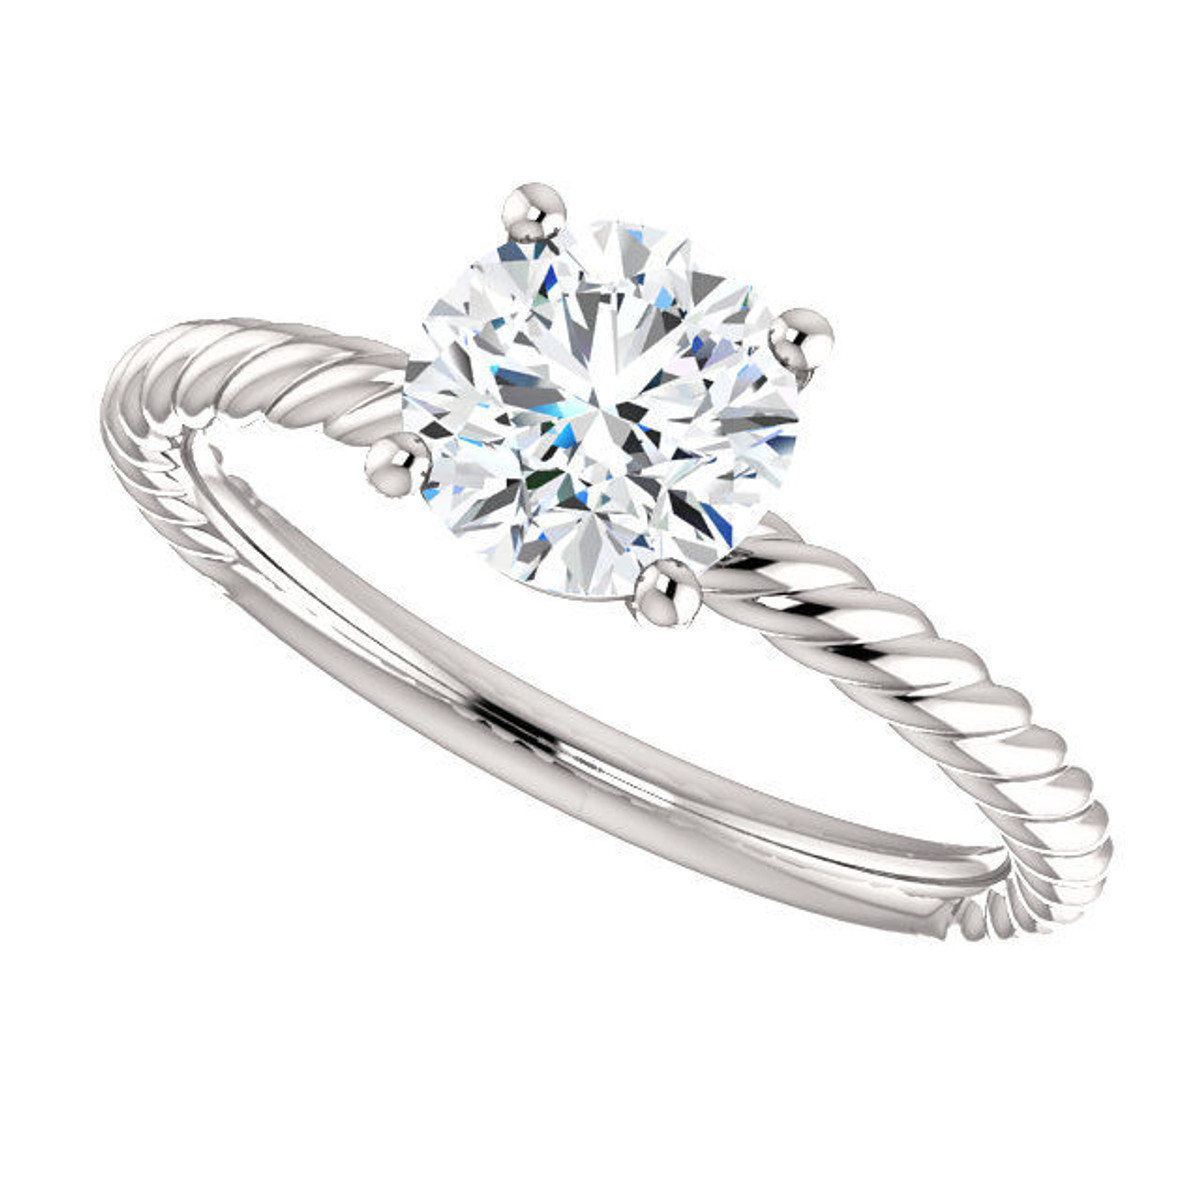 White Gold Rope Engagement Ring